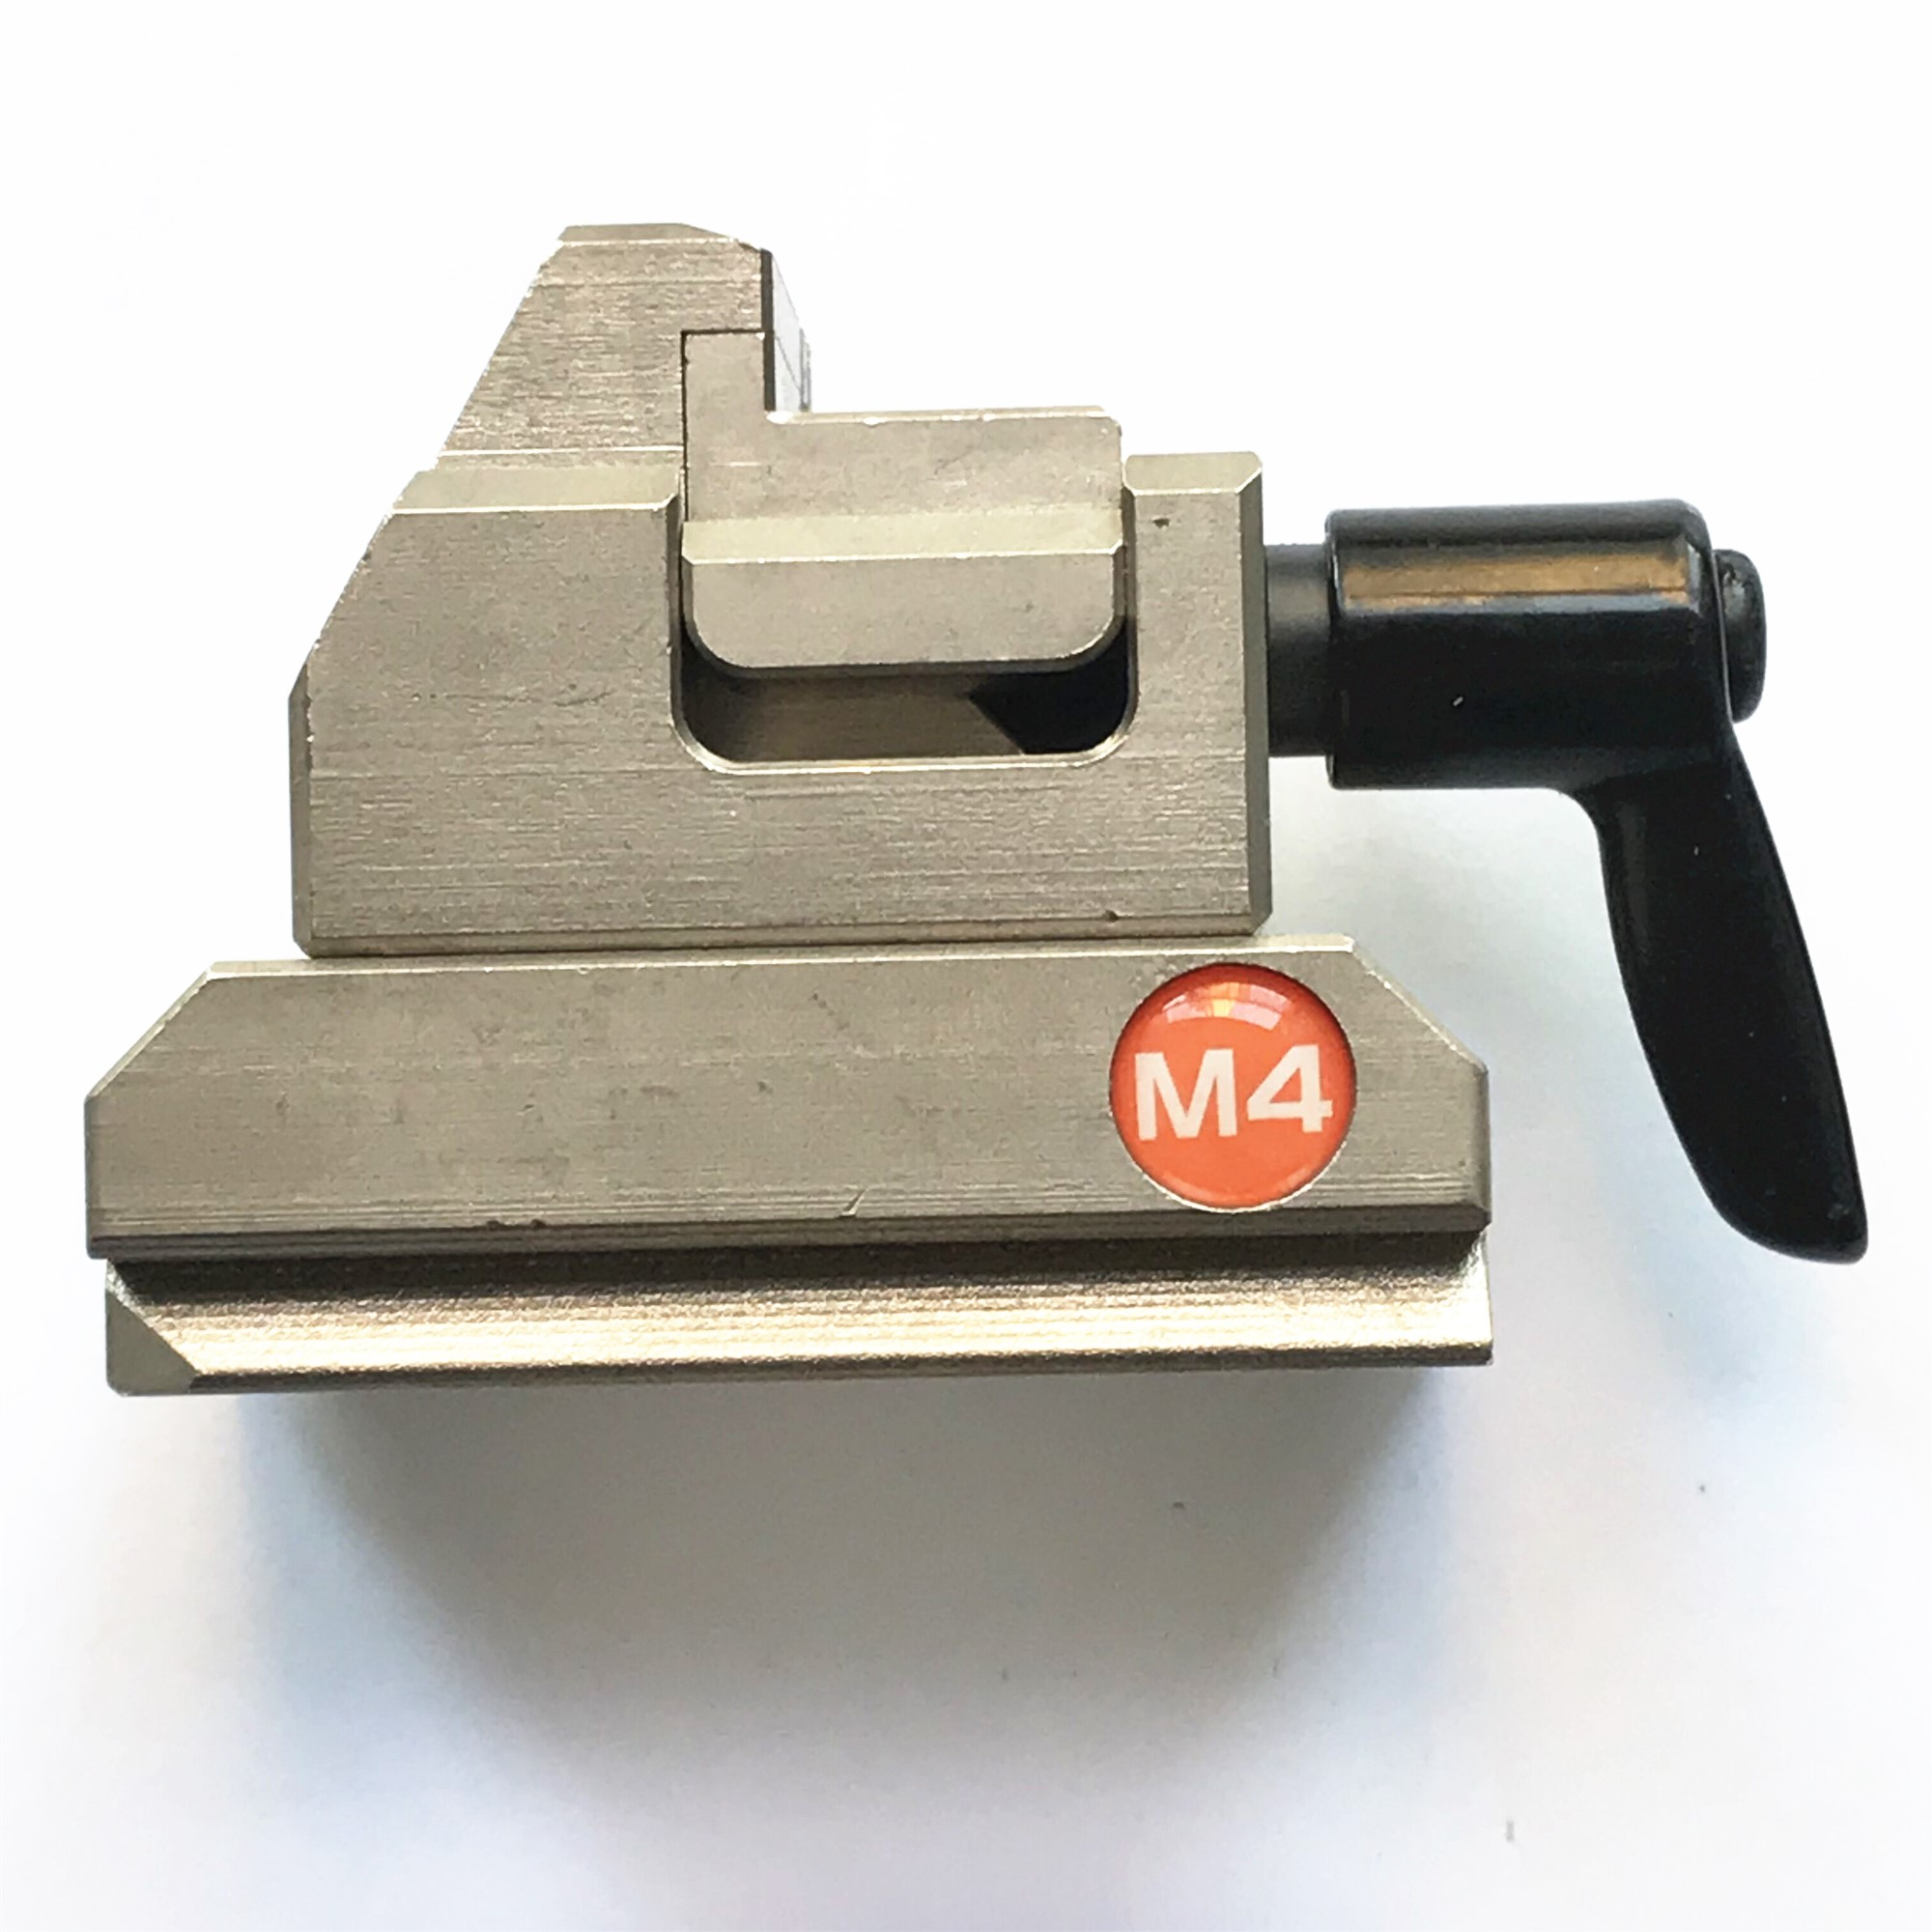 Condor M4 Clamp for House Keys Works with Condor XC-MINI Plus & Dolphine Key Cutting Machine